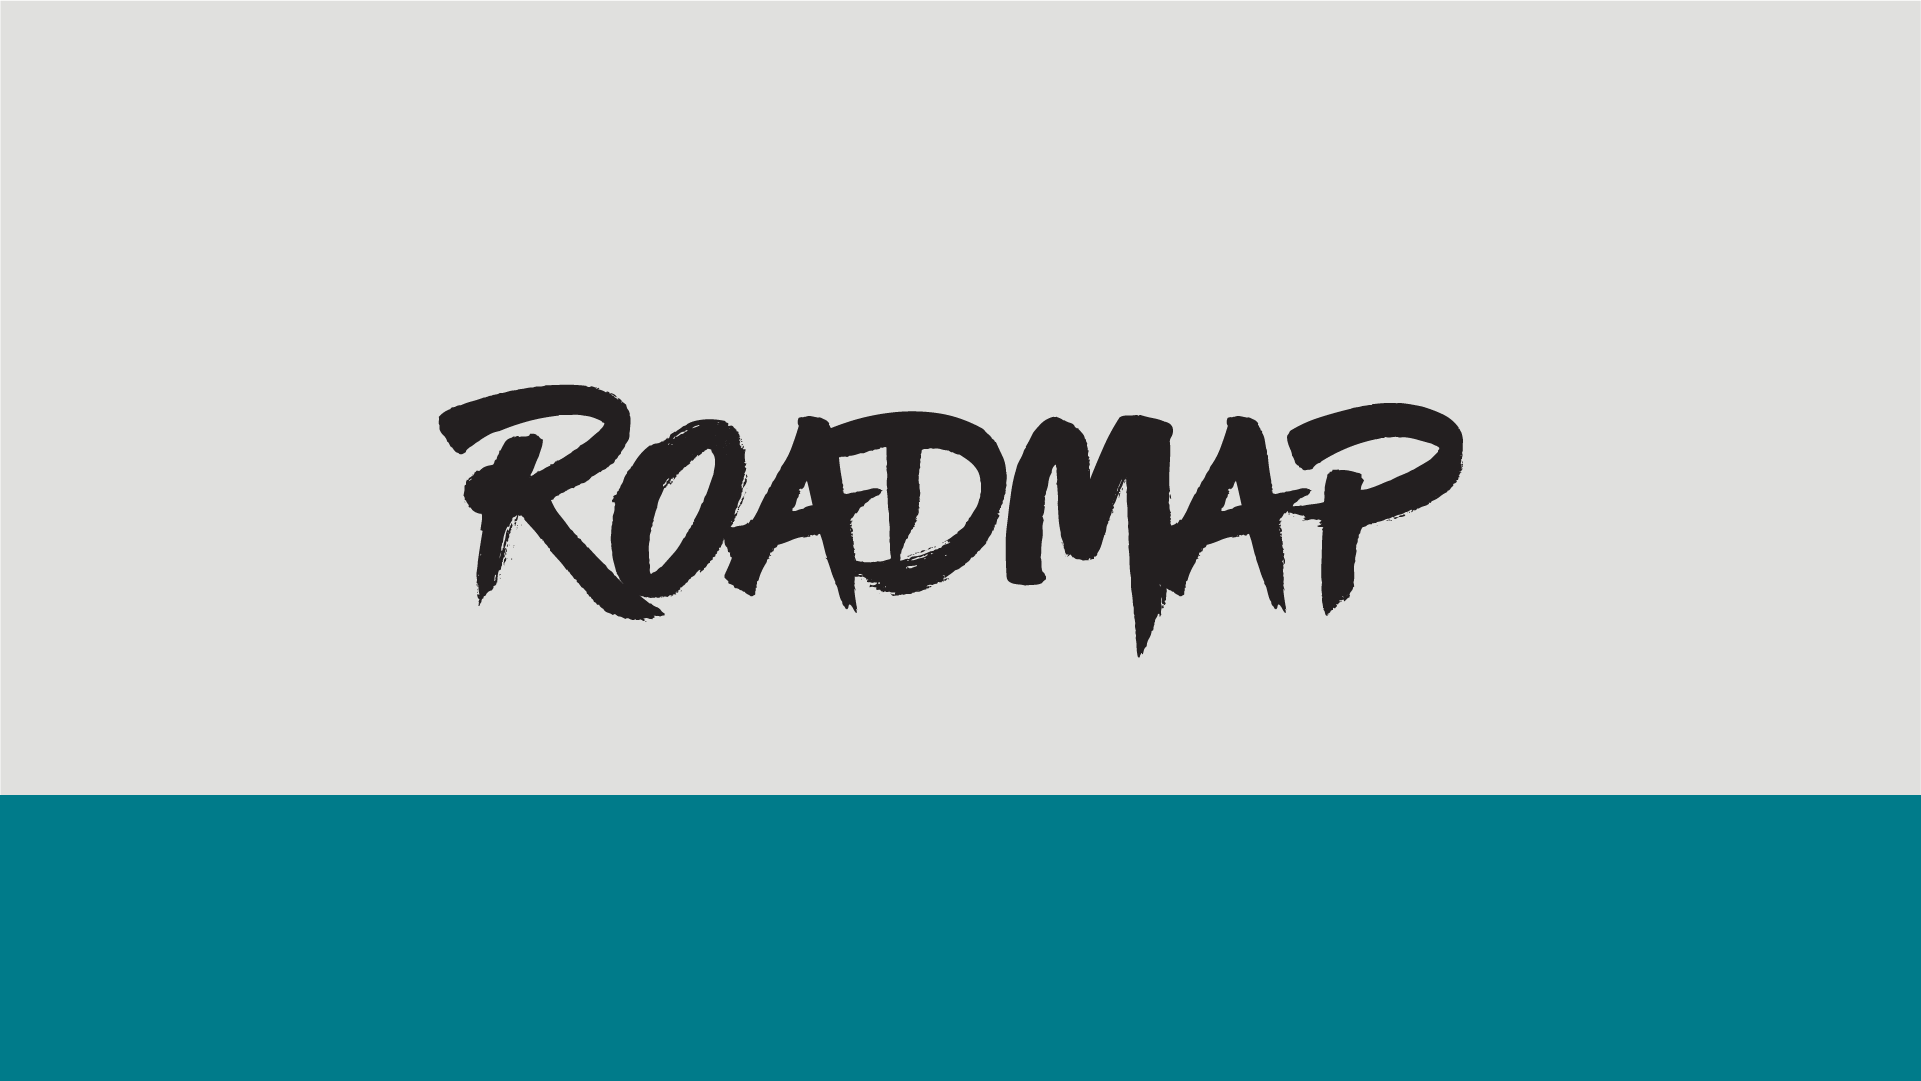 roadmap business plan small business course